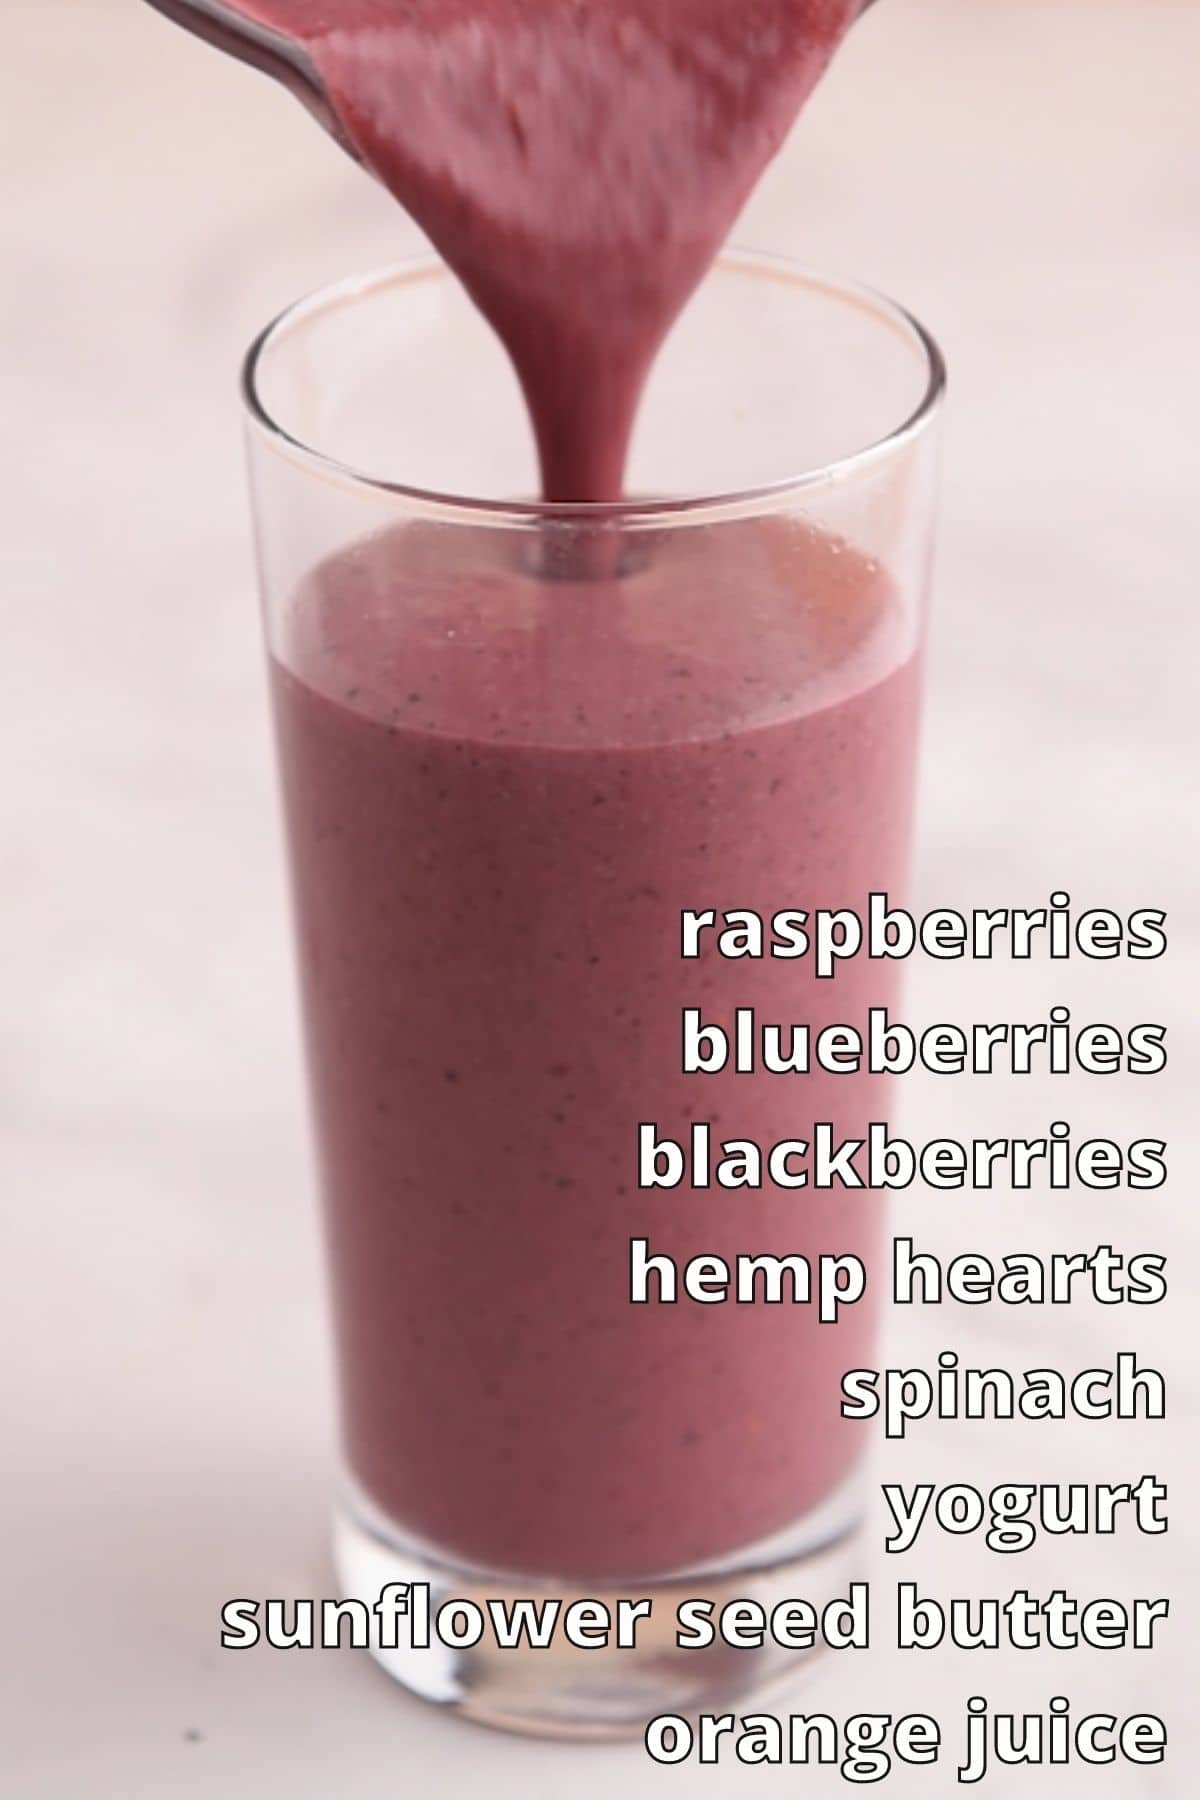 Red smoothie being poured into tall glass with ingredients list